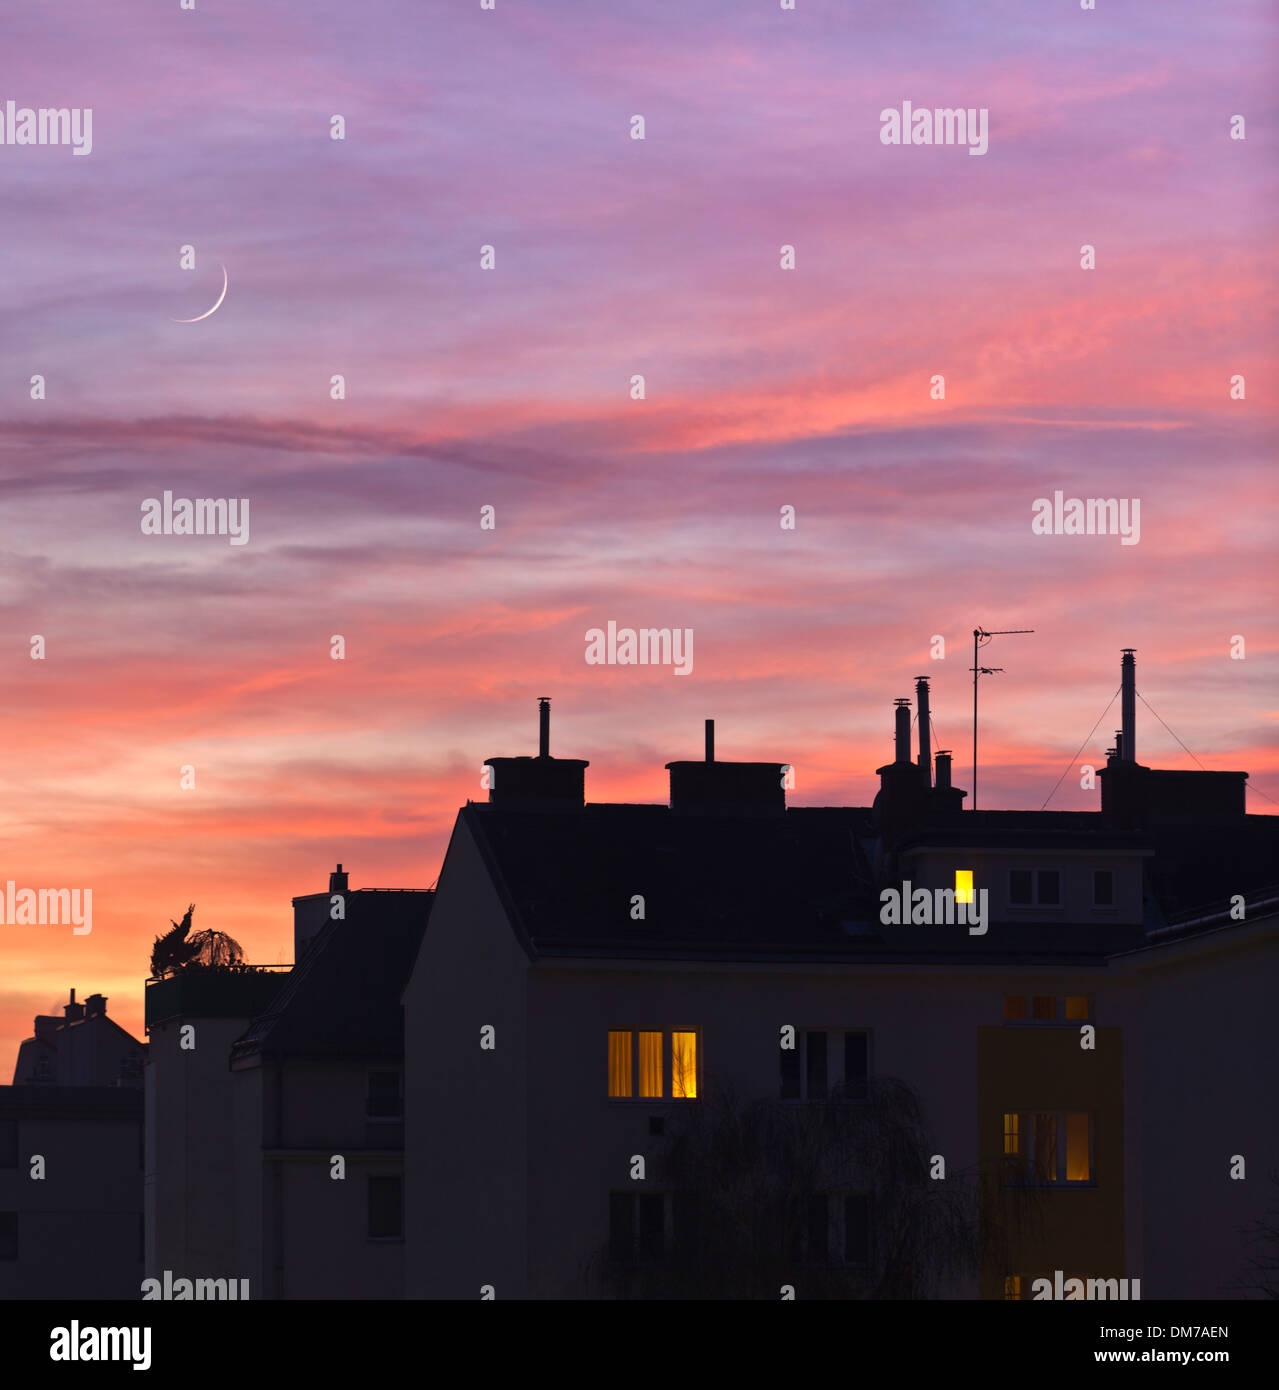 Sunset over urban rooftops with lights from some home windows - Stock Image